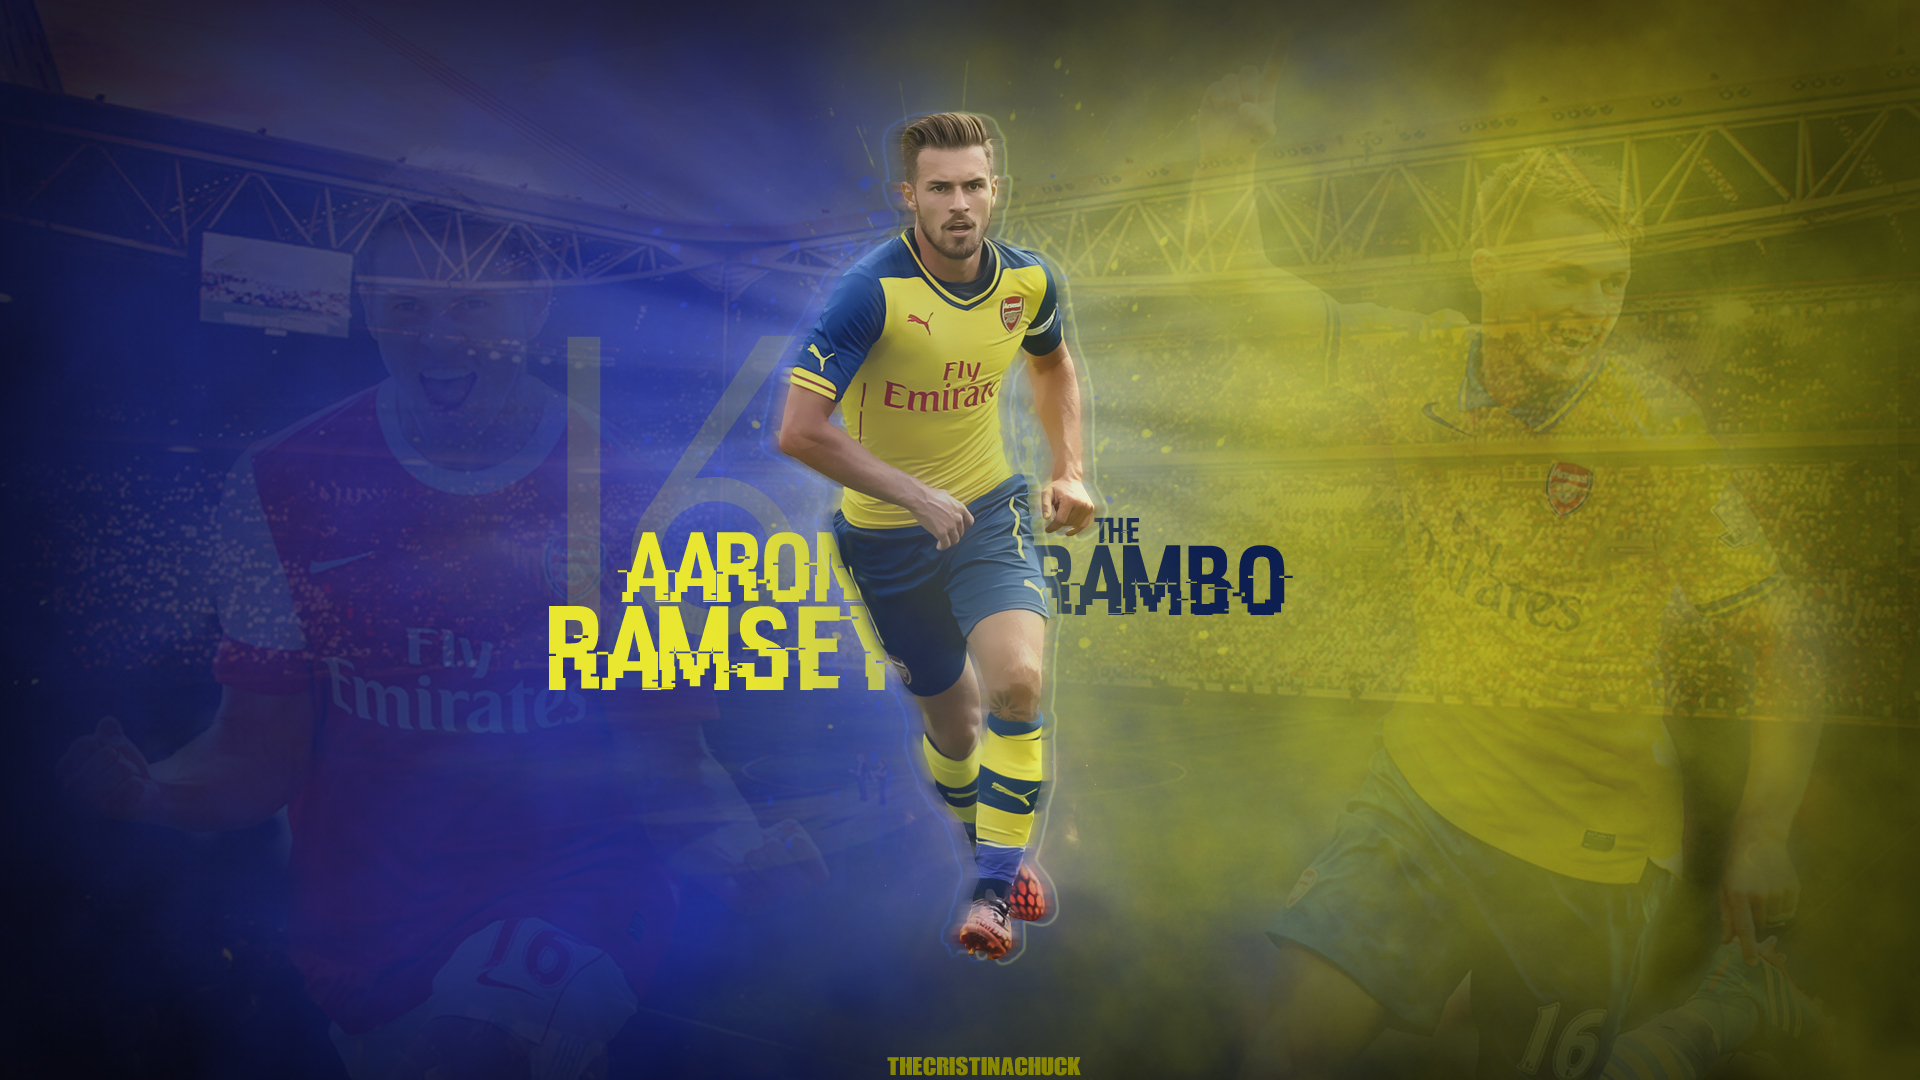 aaron-ramsey-wallpaper